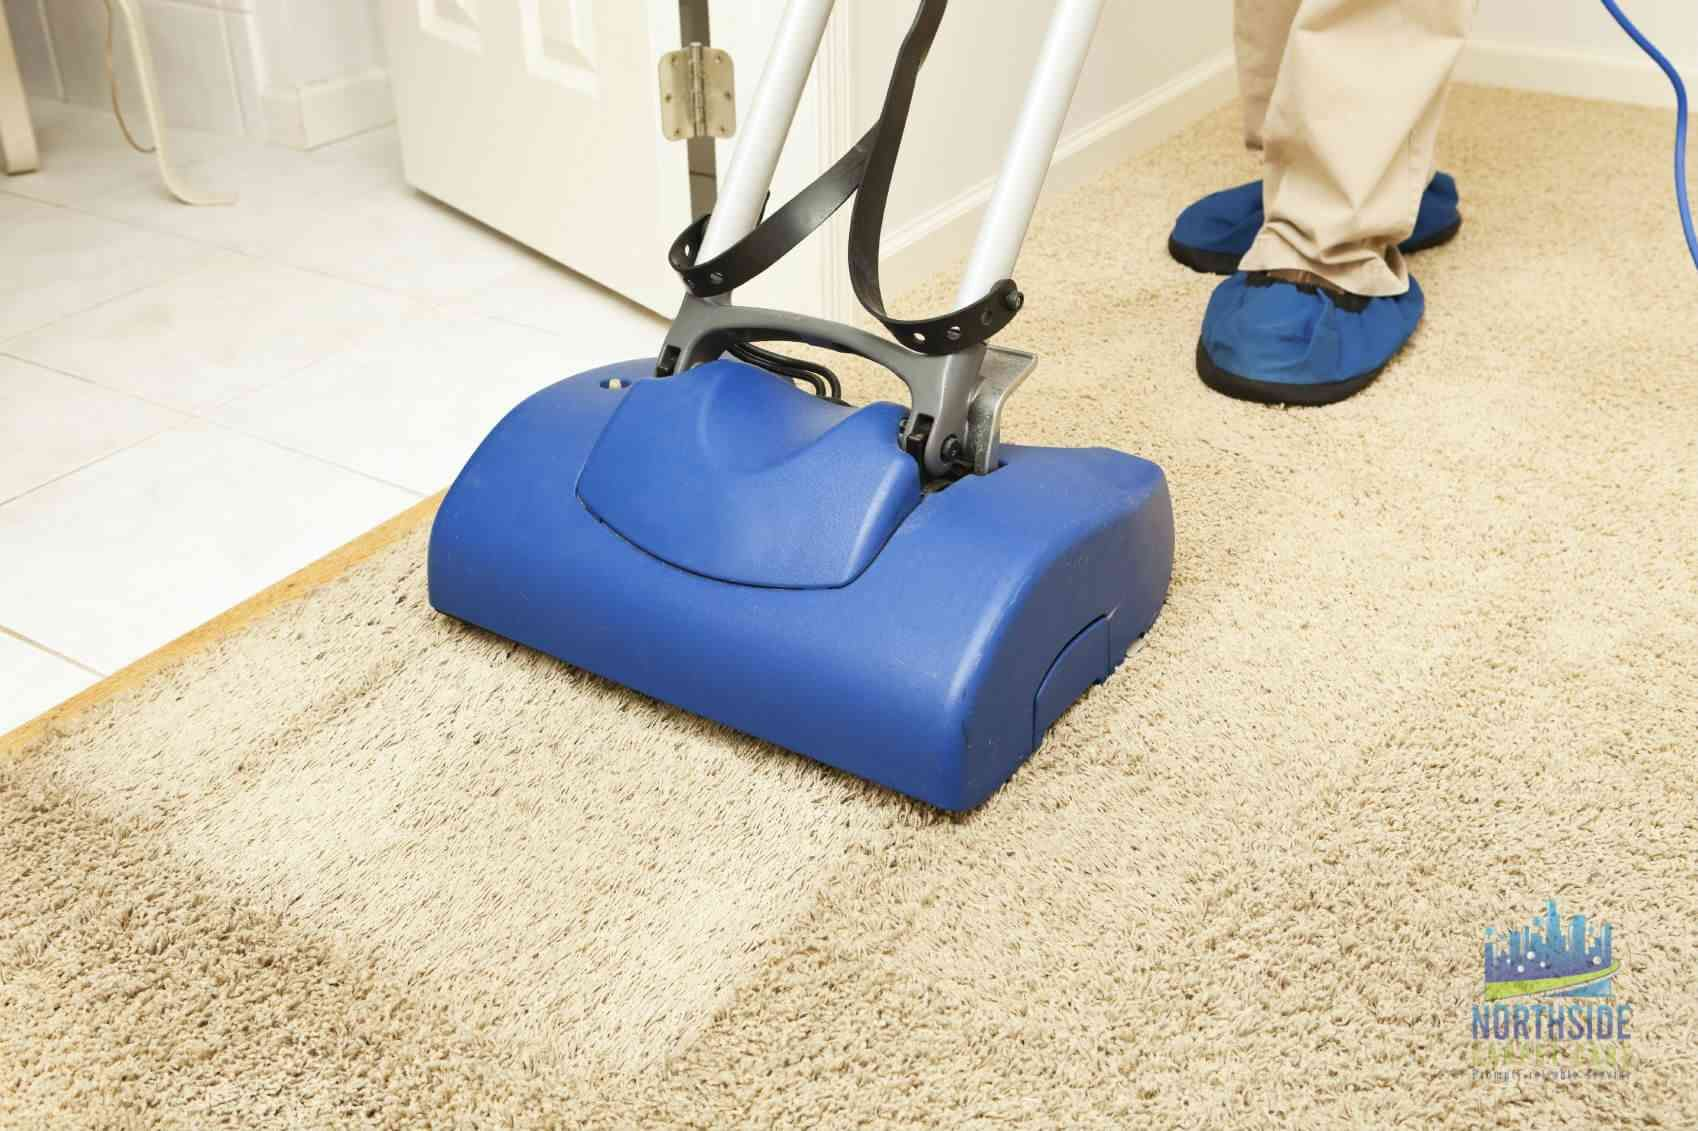 Northside Carpet Care offers wet or dry cleaning suitable